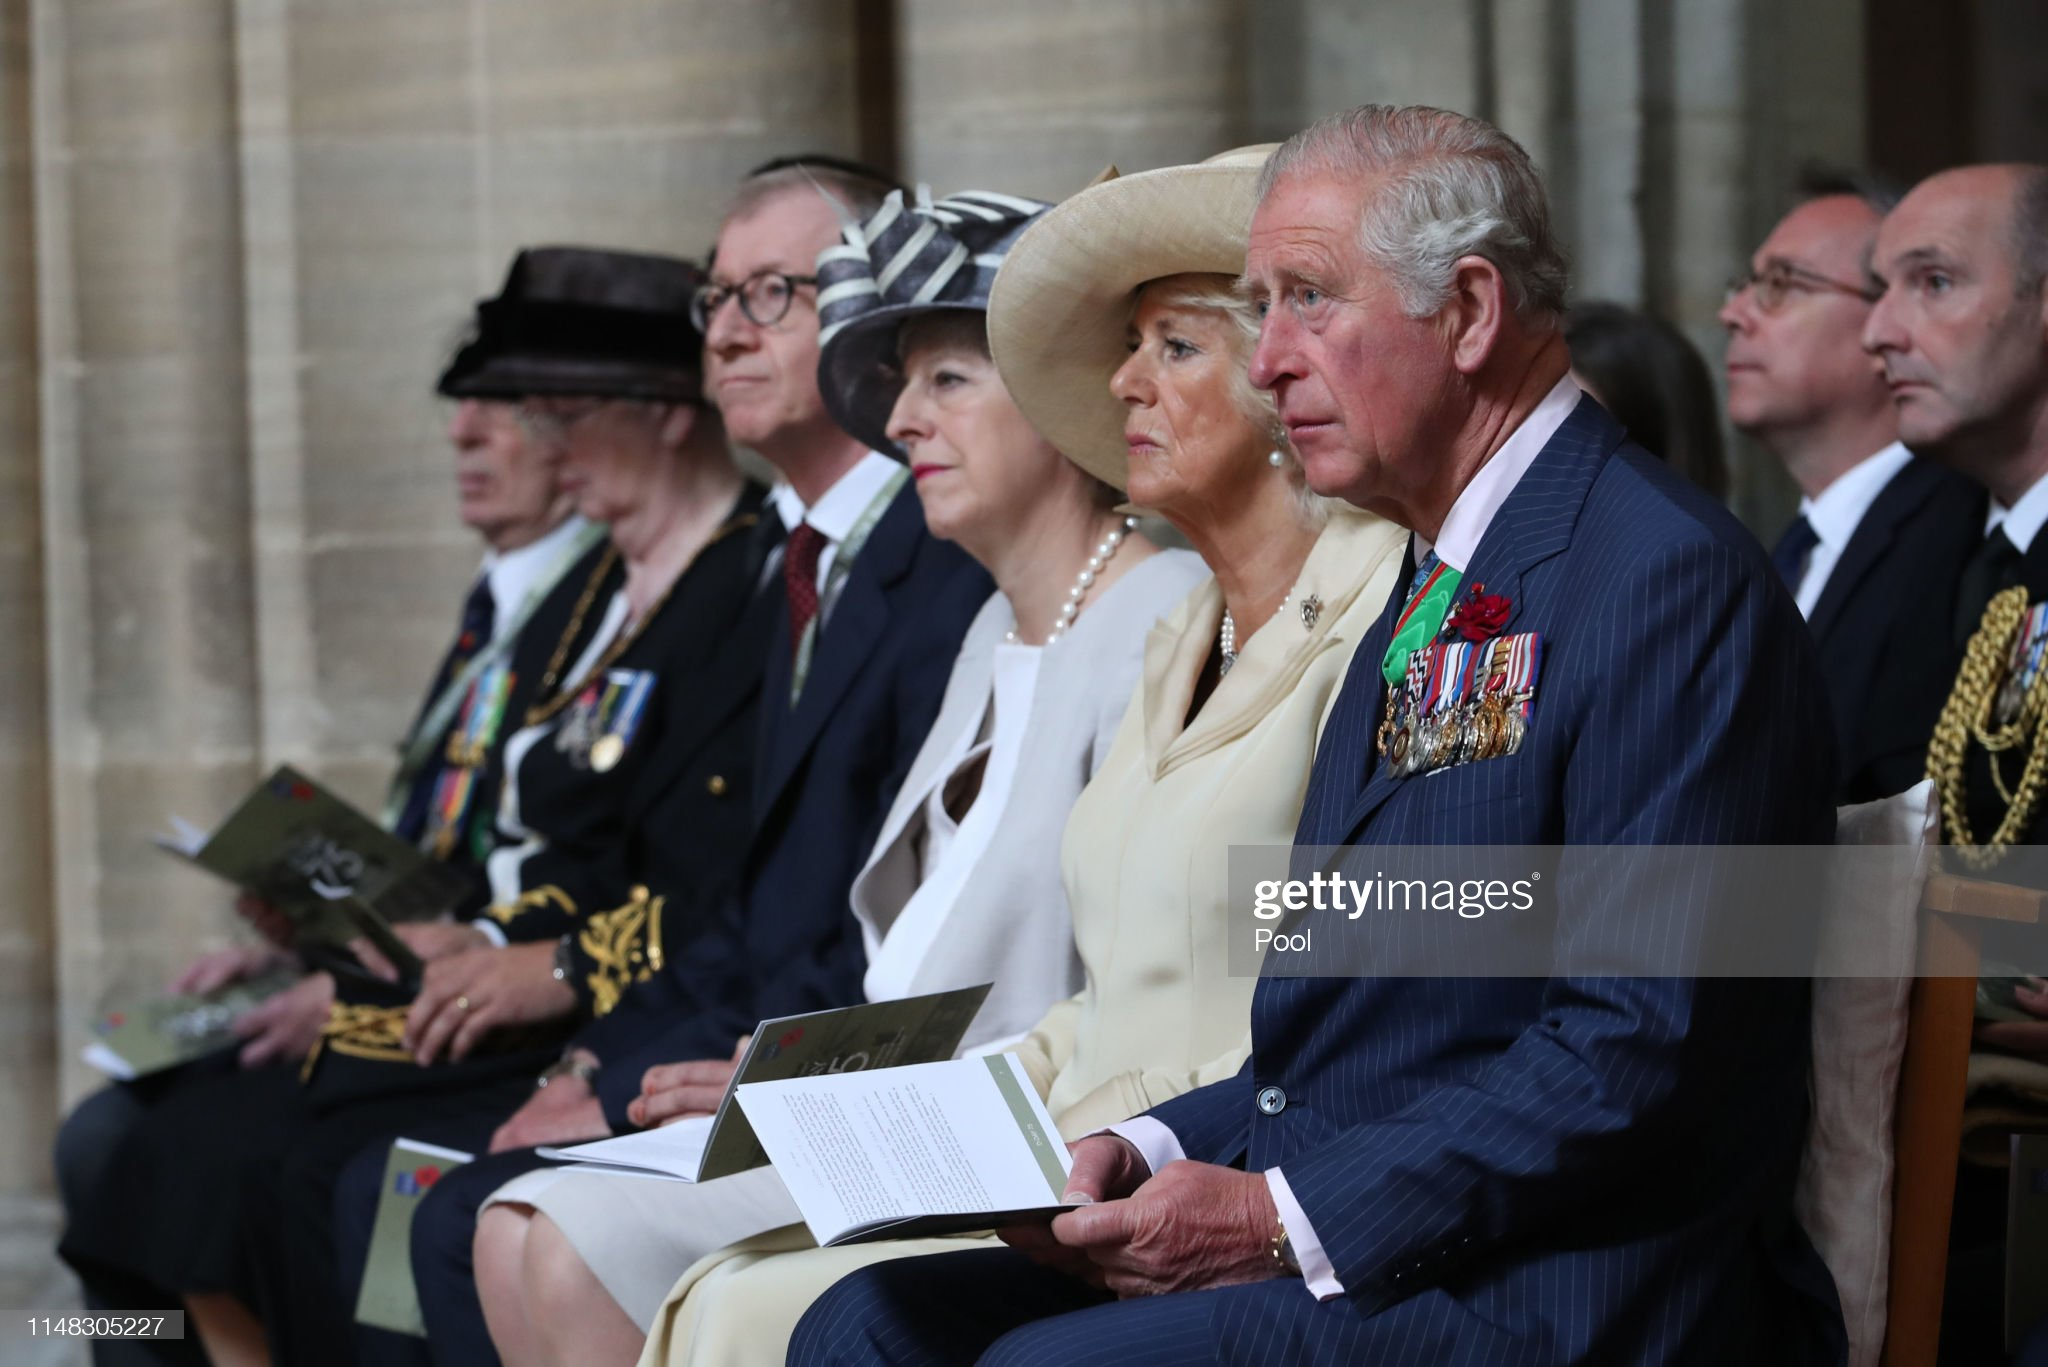 philip-may-british-prime-minister-theresa-may-camilla-duchess-of-and-picture-id1148305227